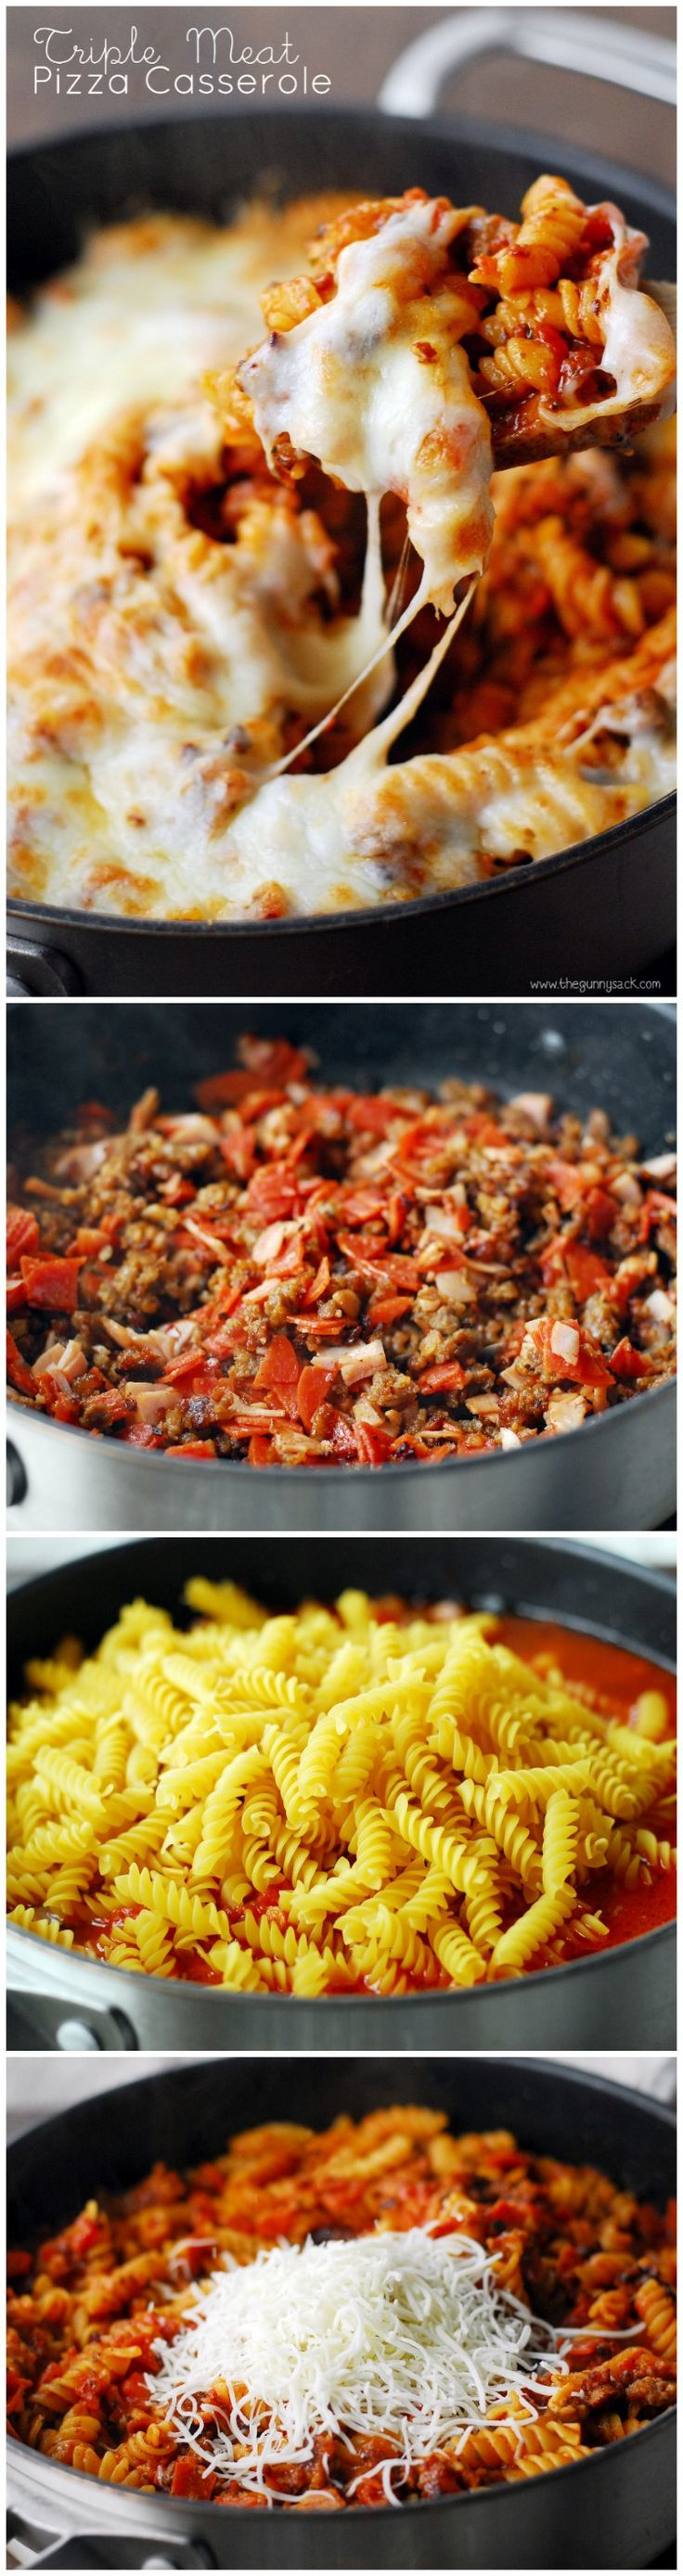 Triple Meat Pizza Casserole is a delicious one-pot dinner that can be made in 30 minutes! #30minutemeals #onepot #sponsored